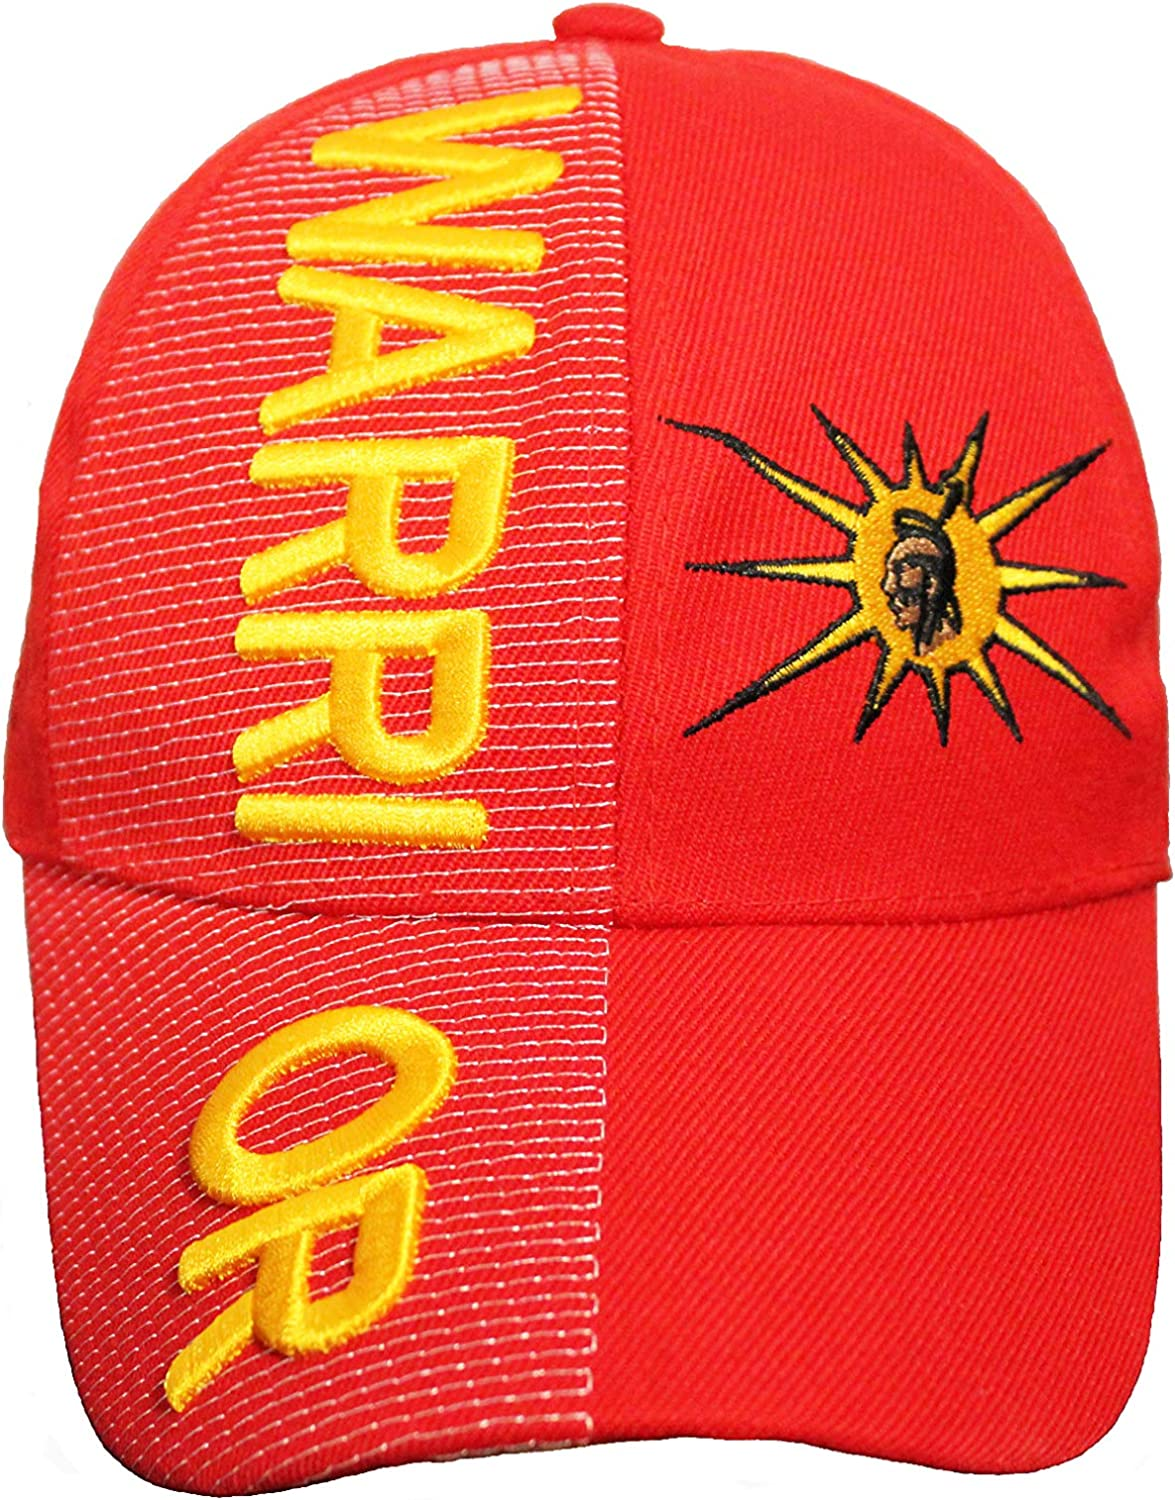 Warrior with Mohawk Logo Red Embossed HAT Cap.New